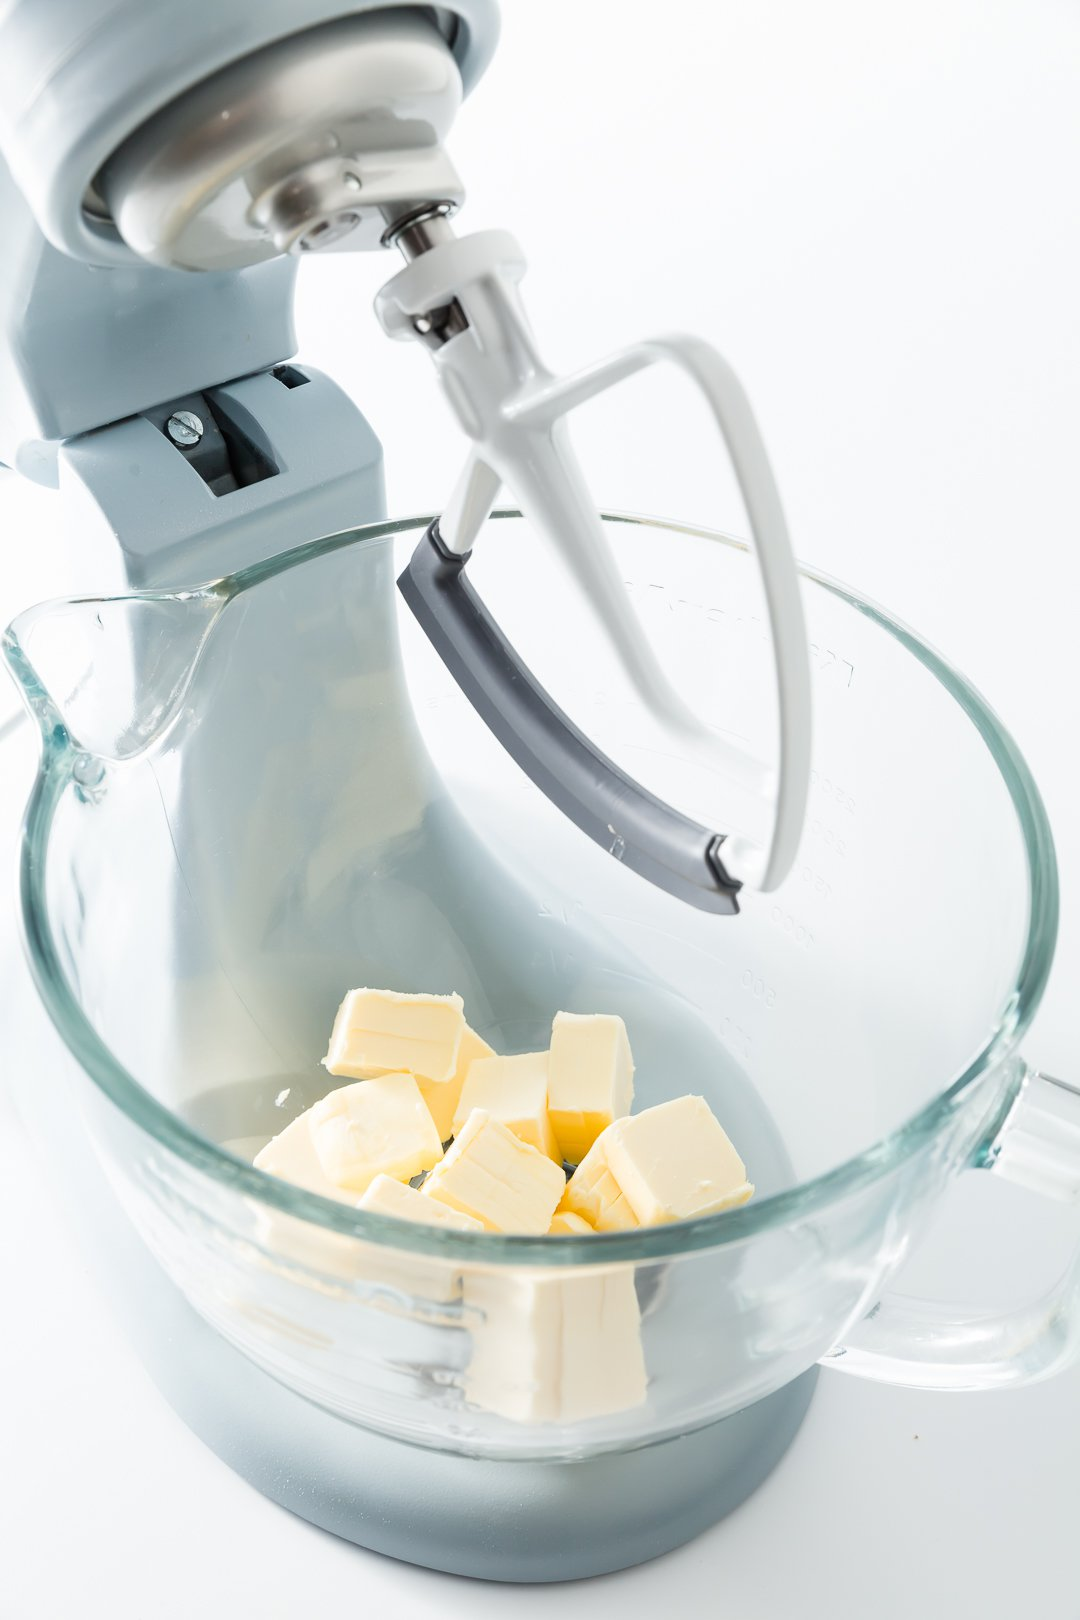 Butter in a kitchenaid mixer